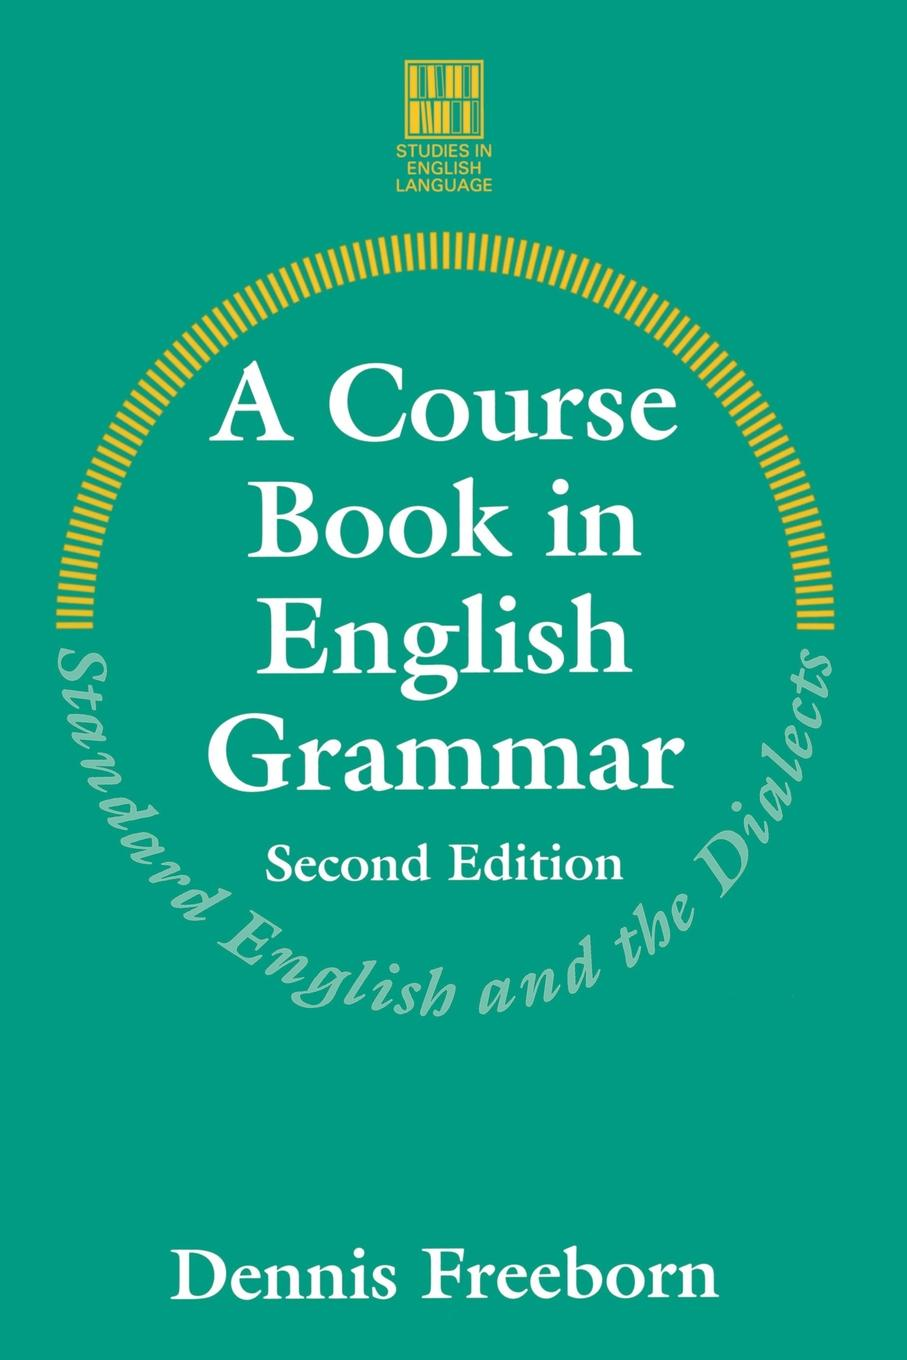 Dennis Freeborn A Course Book in English Grammar. Standard English and the Dialects edwin herbert lewis a text book of applied english grammar